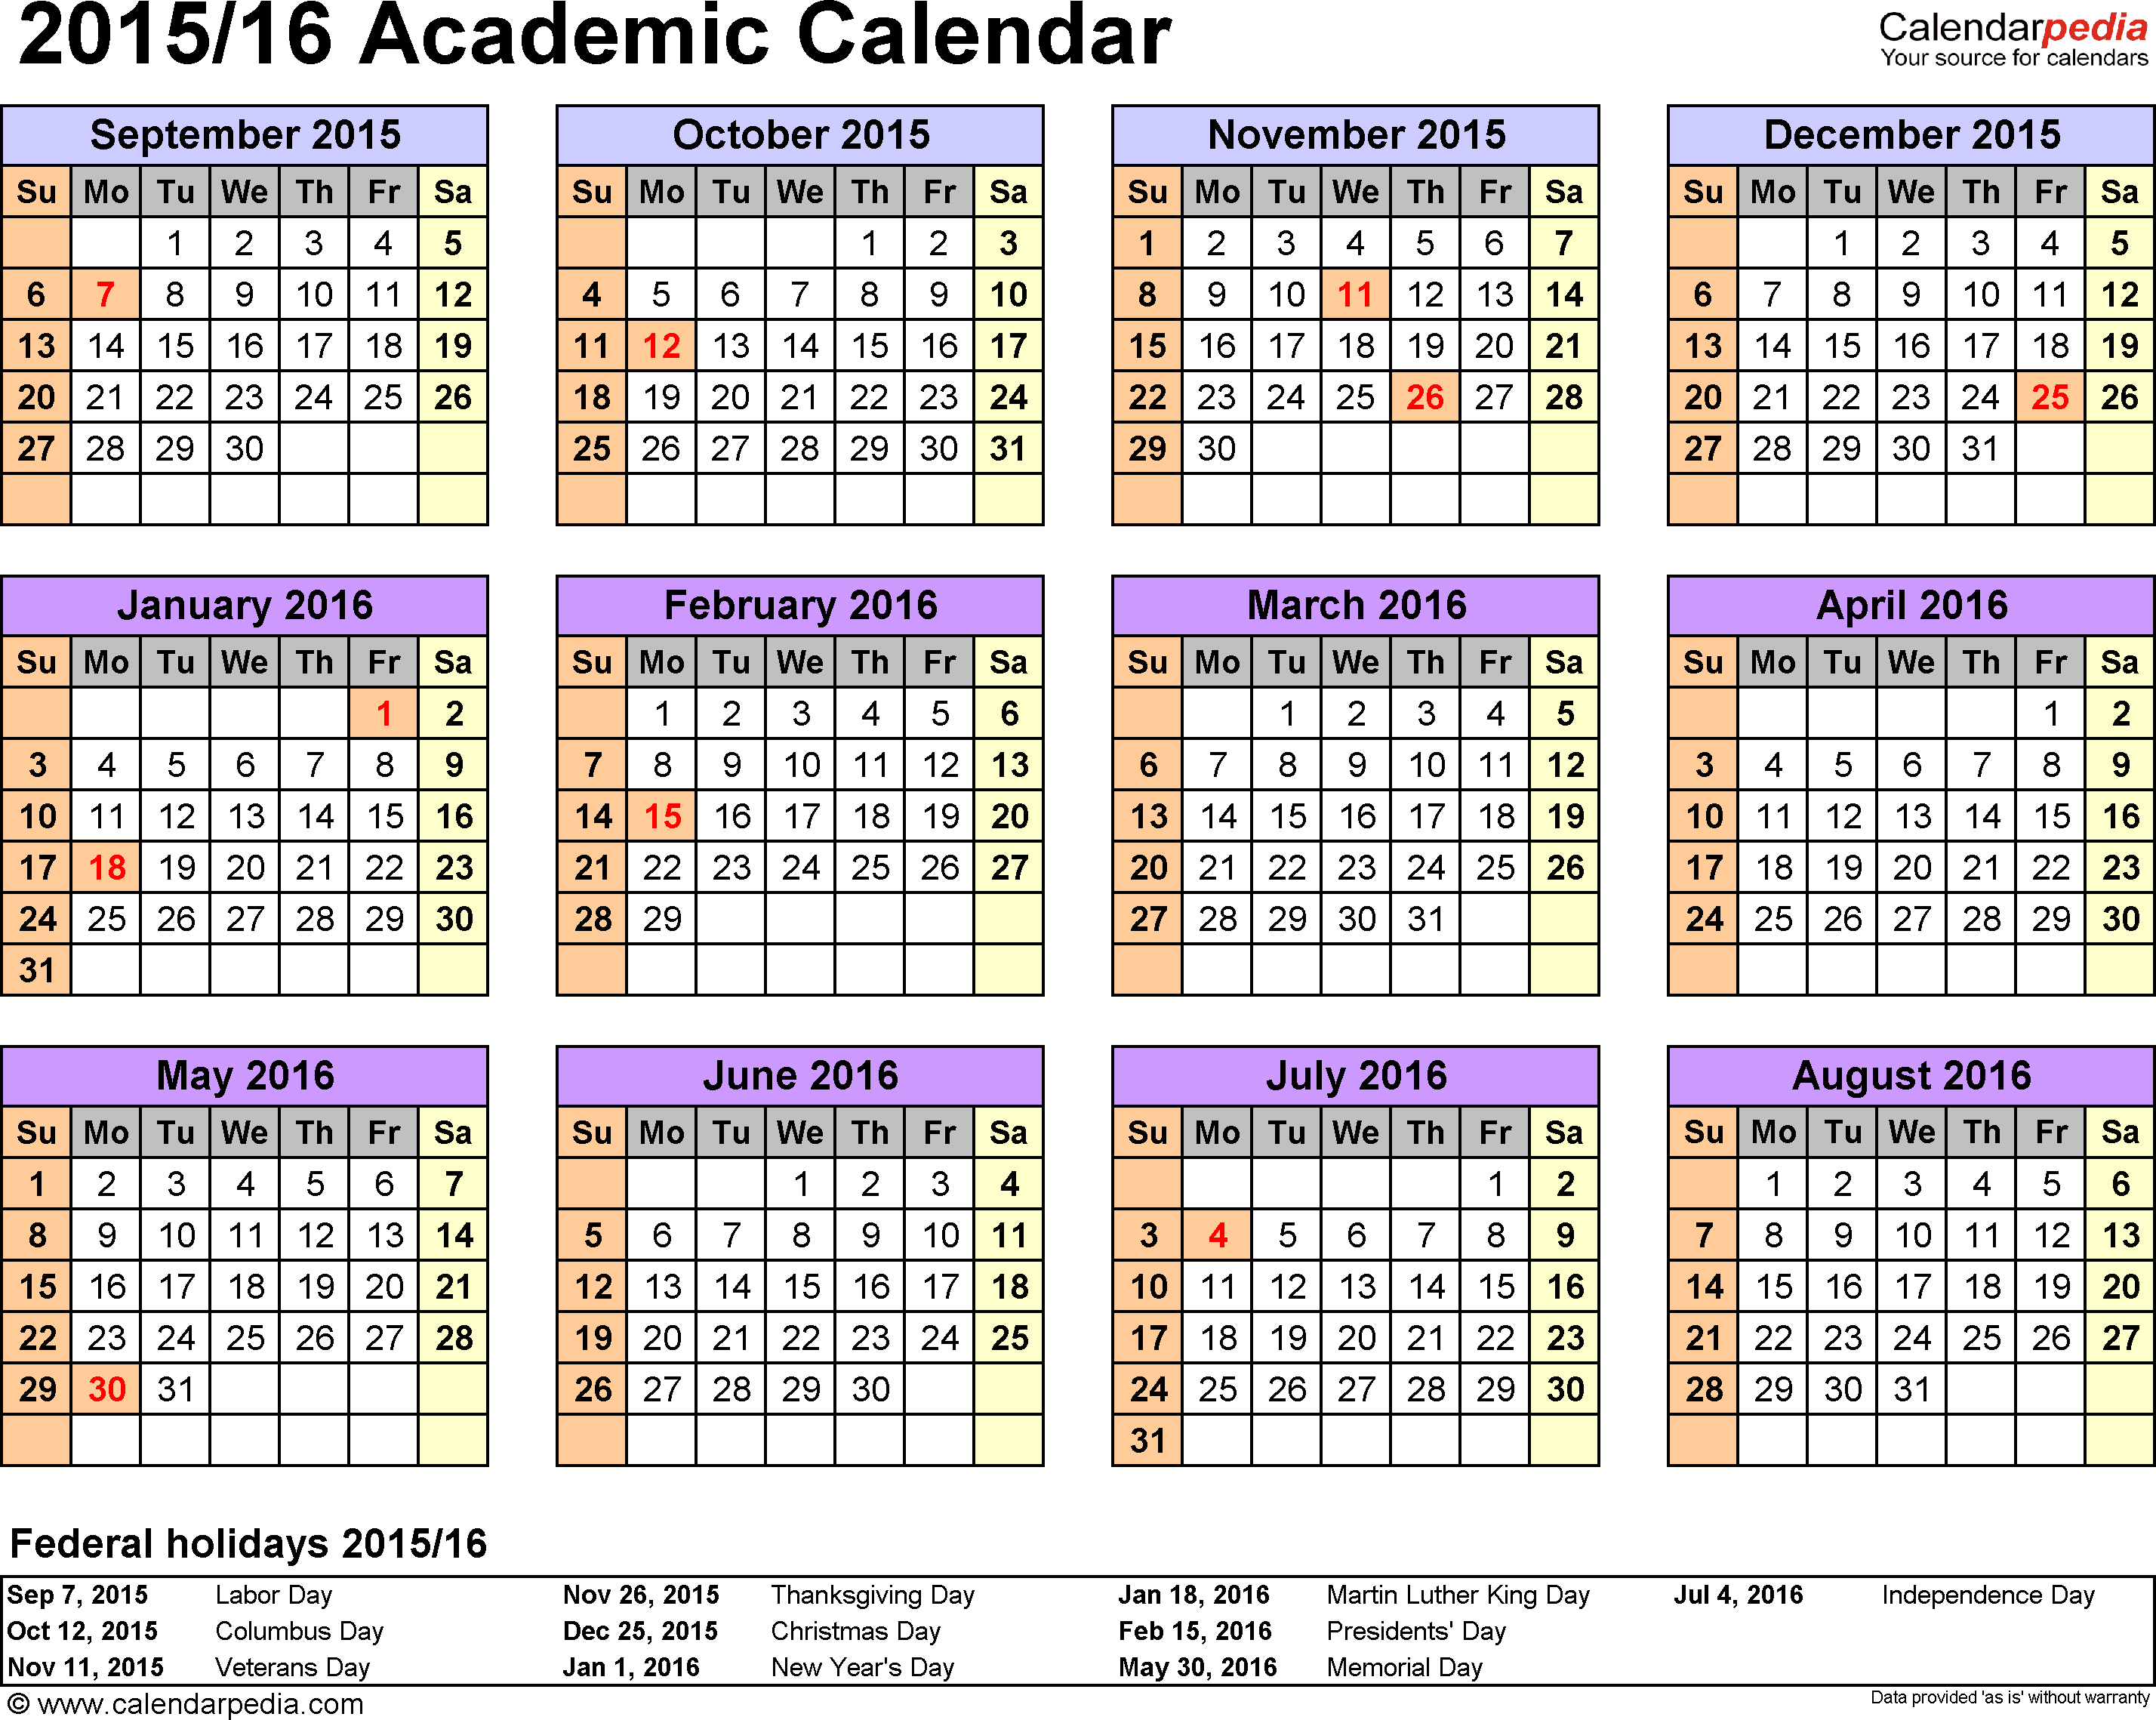 Template 4: Academic calendar 2015/16 for PDF, landscape orientation, year at a glance, 1 page